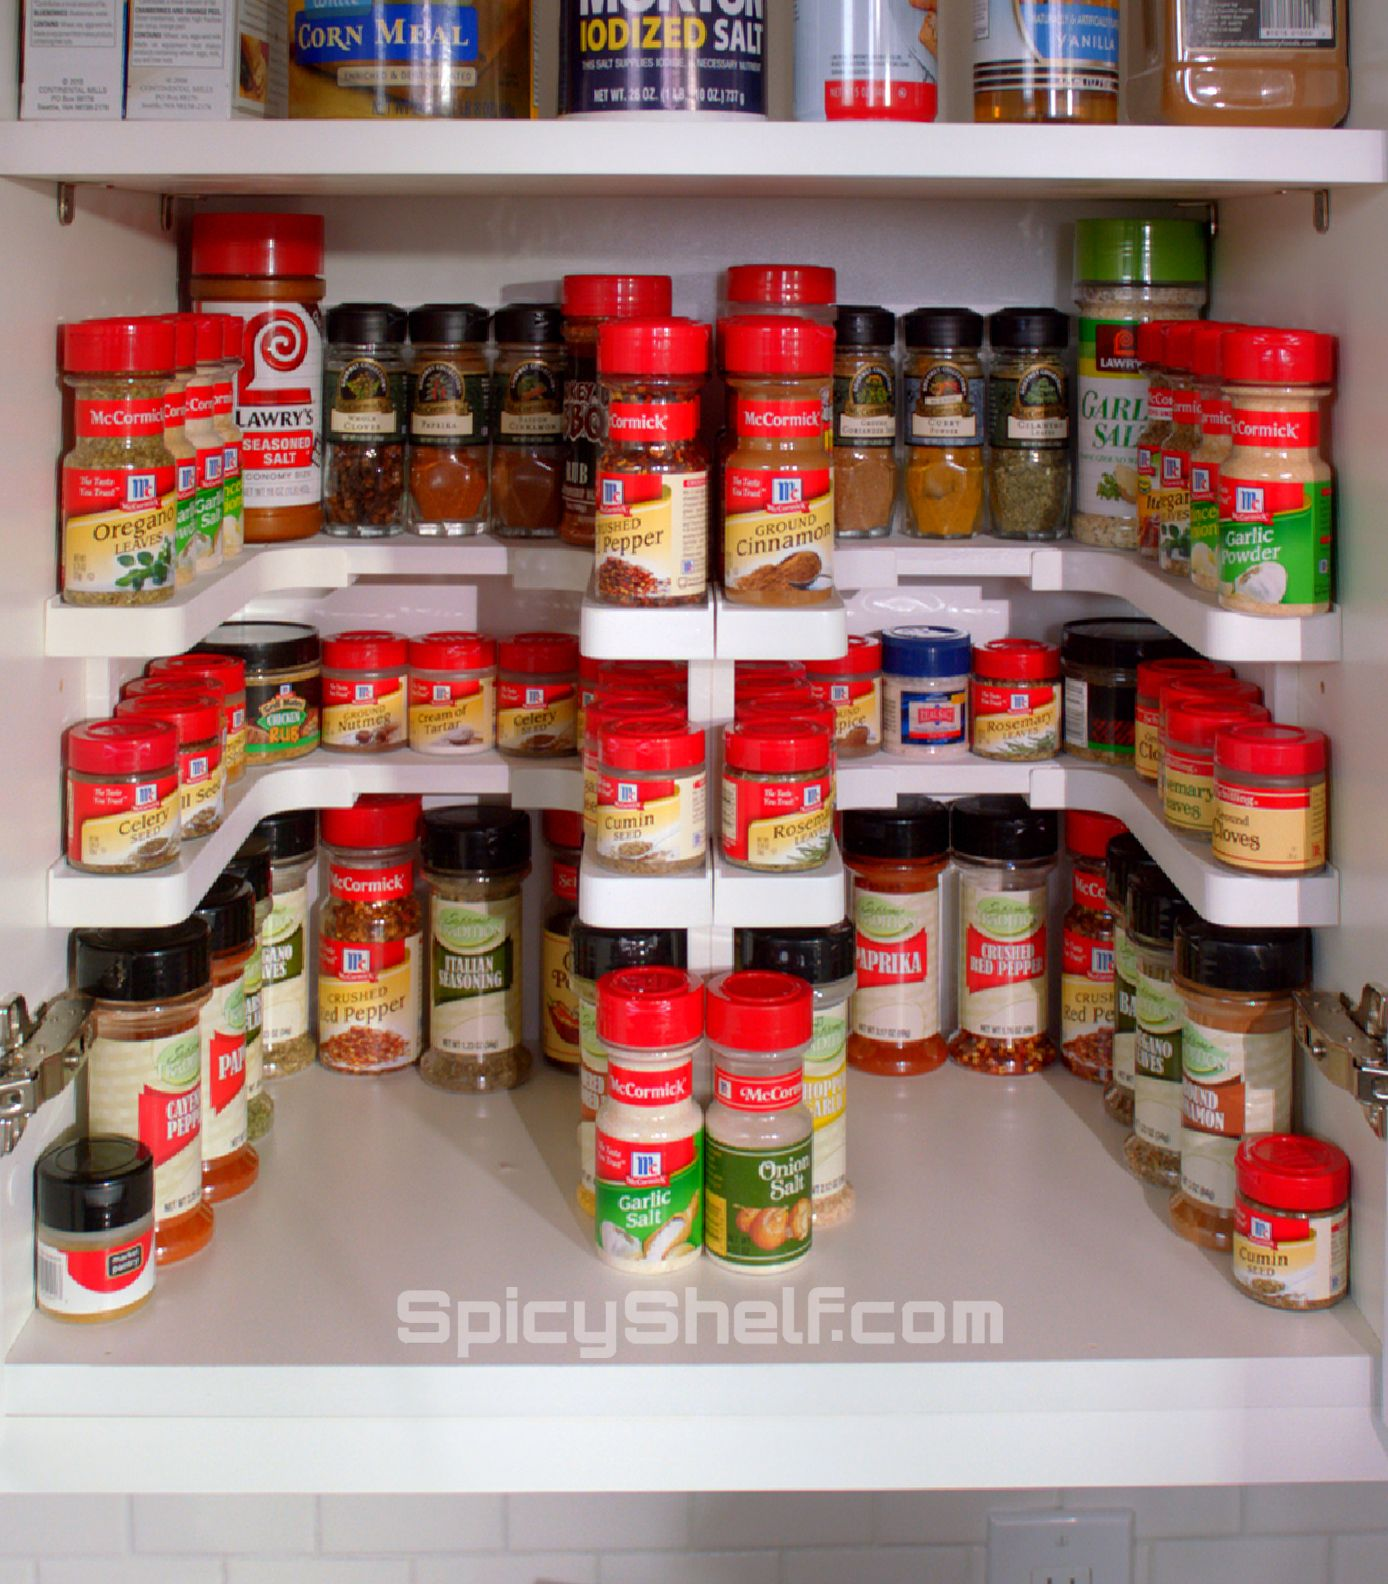 Edenware Spice Rack And Stackable Shelf Brilliant Use Two Spicy Shelf Kits Stacked Sideside For A Ton Of Spice Inspiration